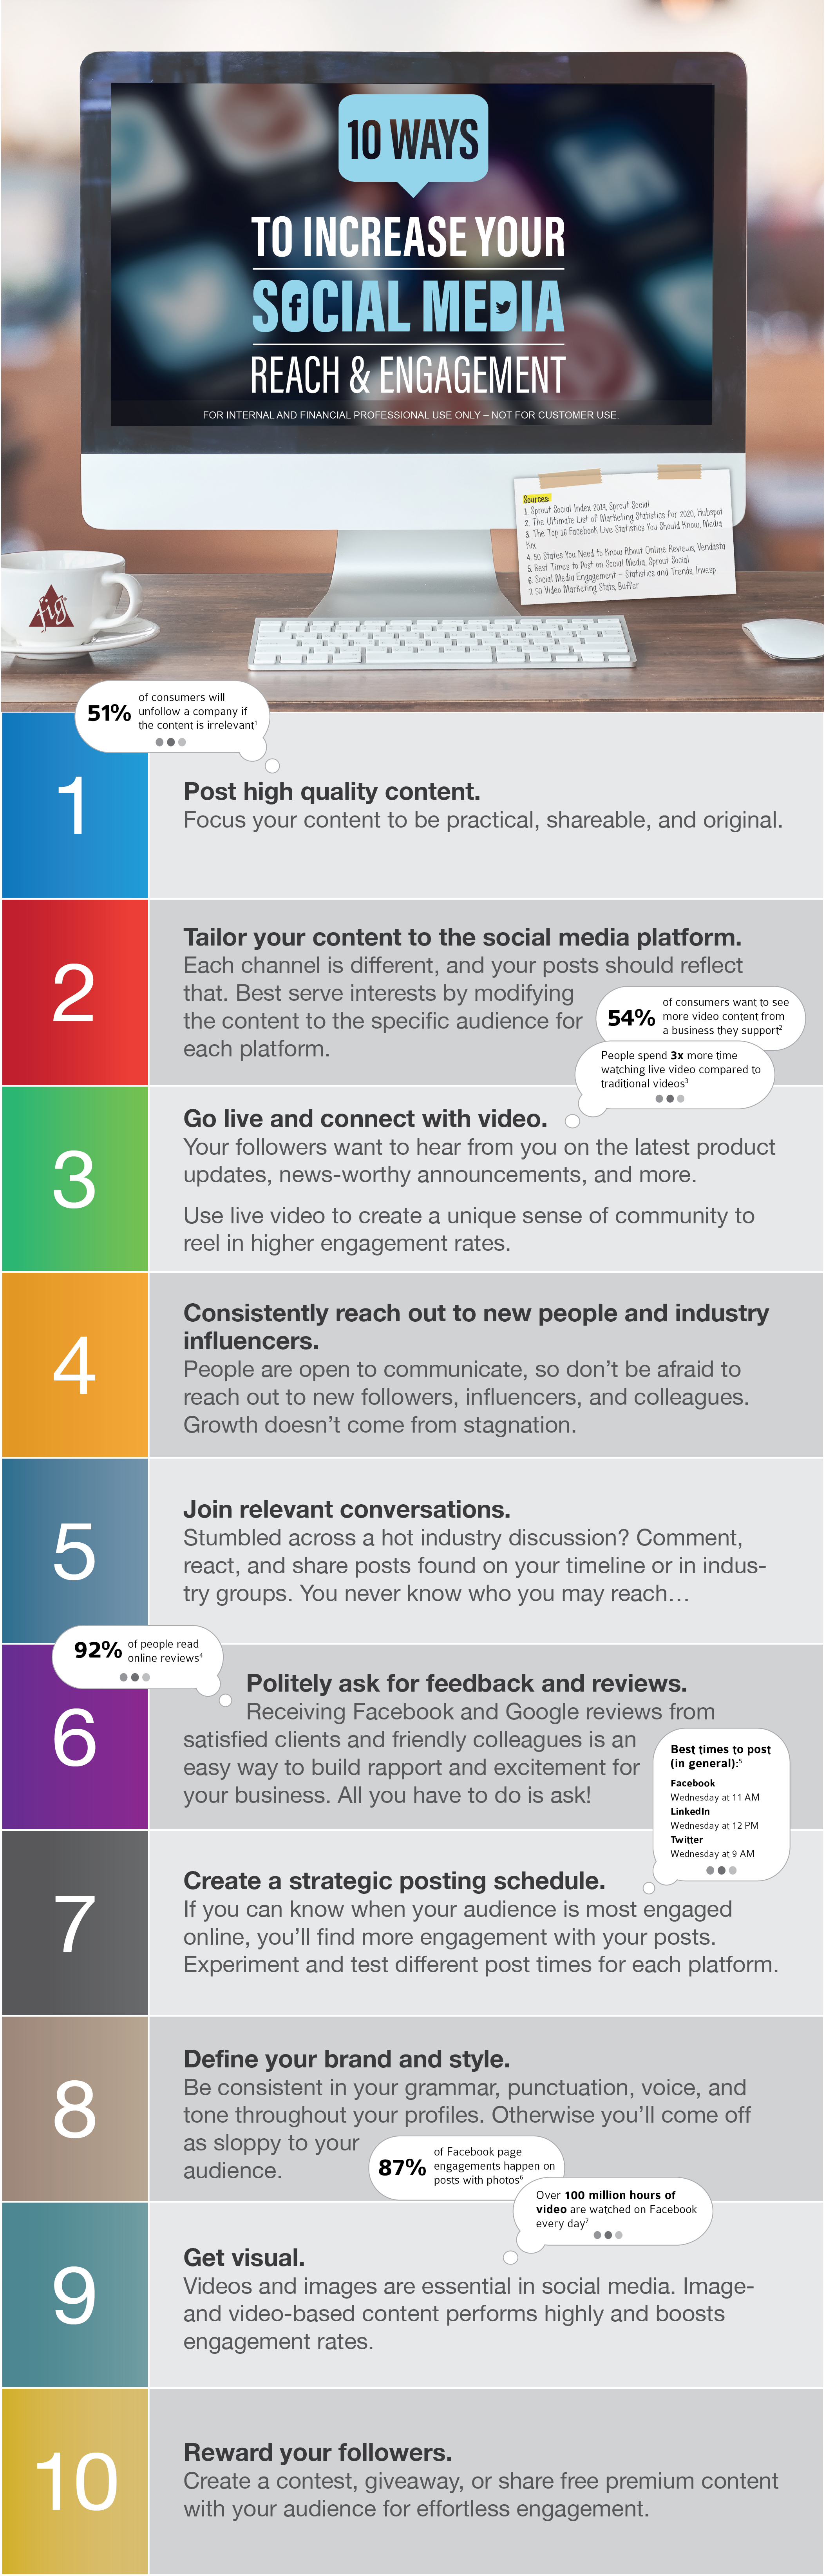 ten ways to increase your social media reach and engagement infographic